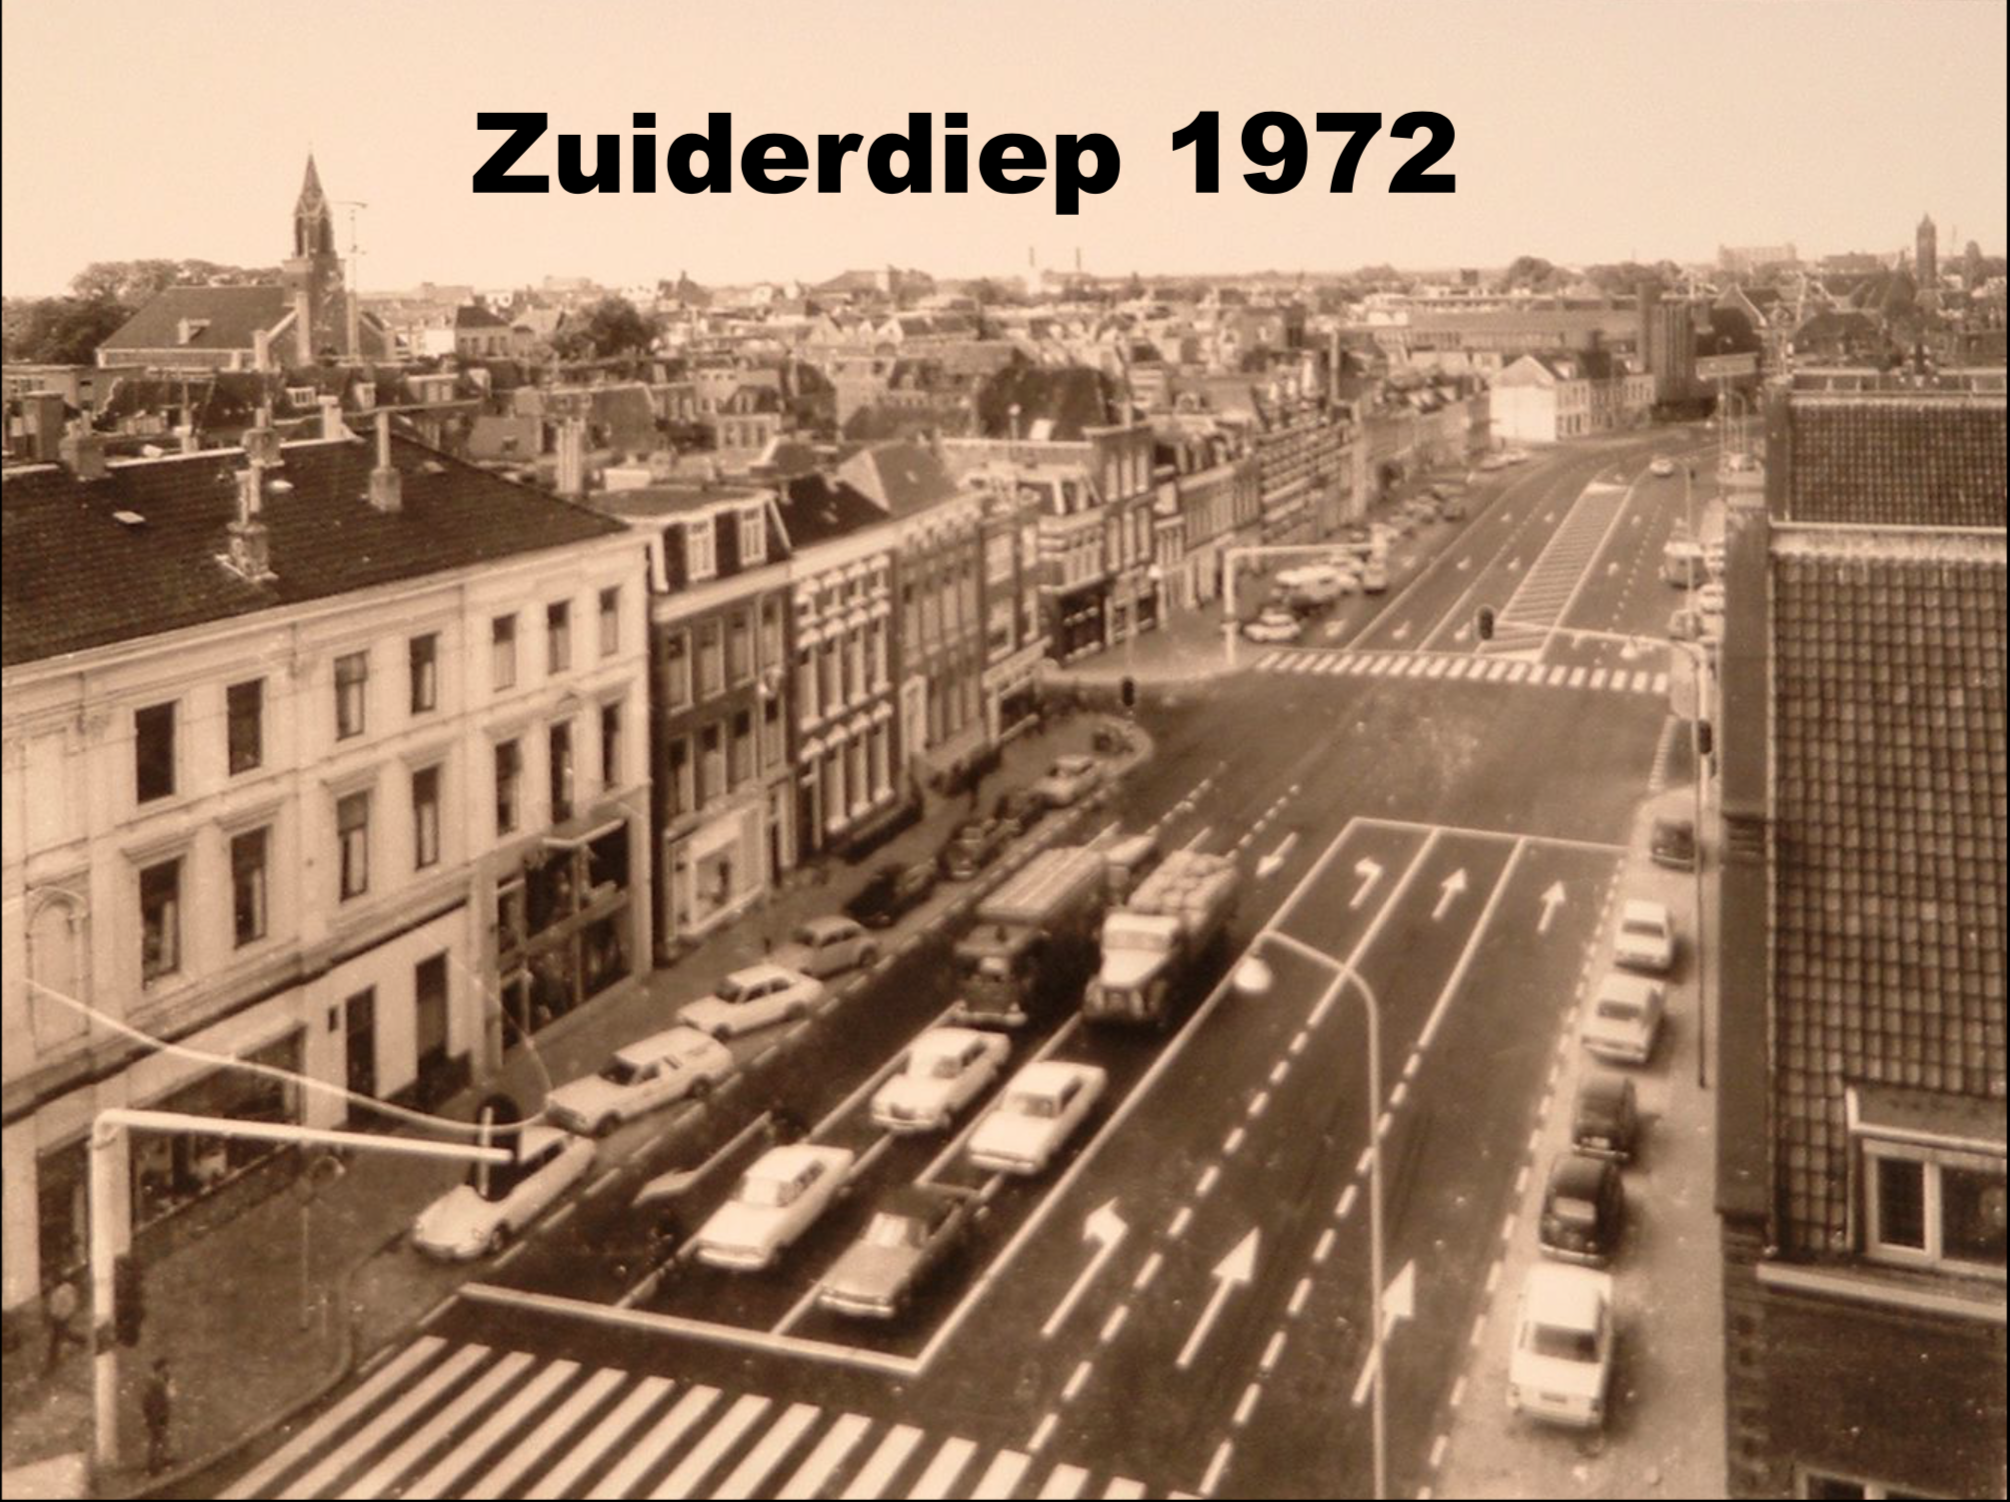 Zuiderdiep.  Image courtesy of Karsijns and Schilt, 2003.